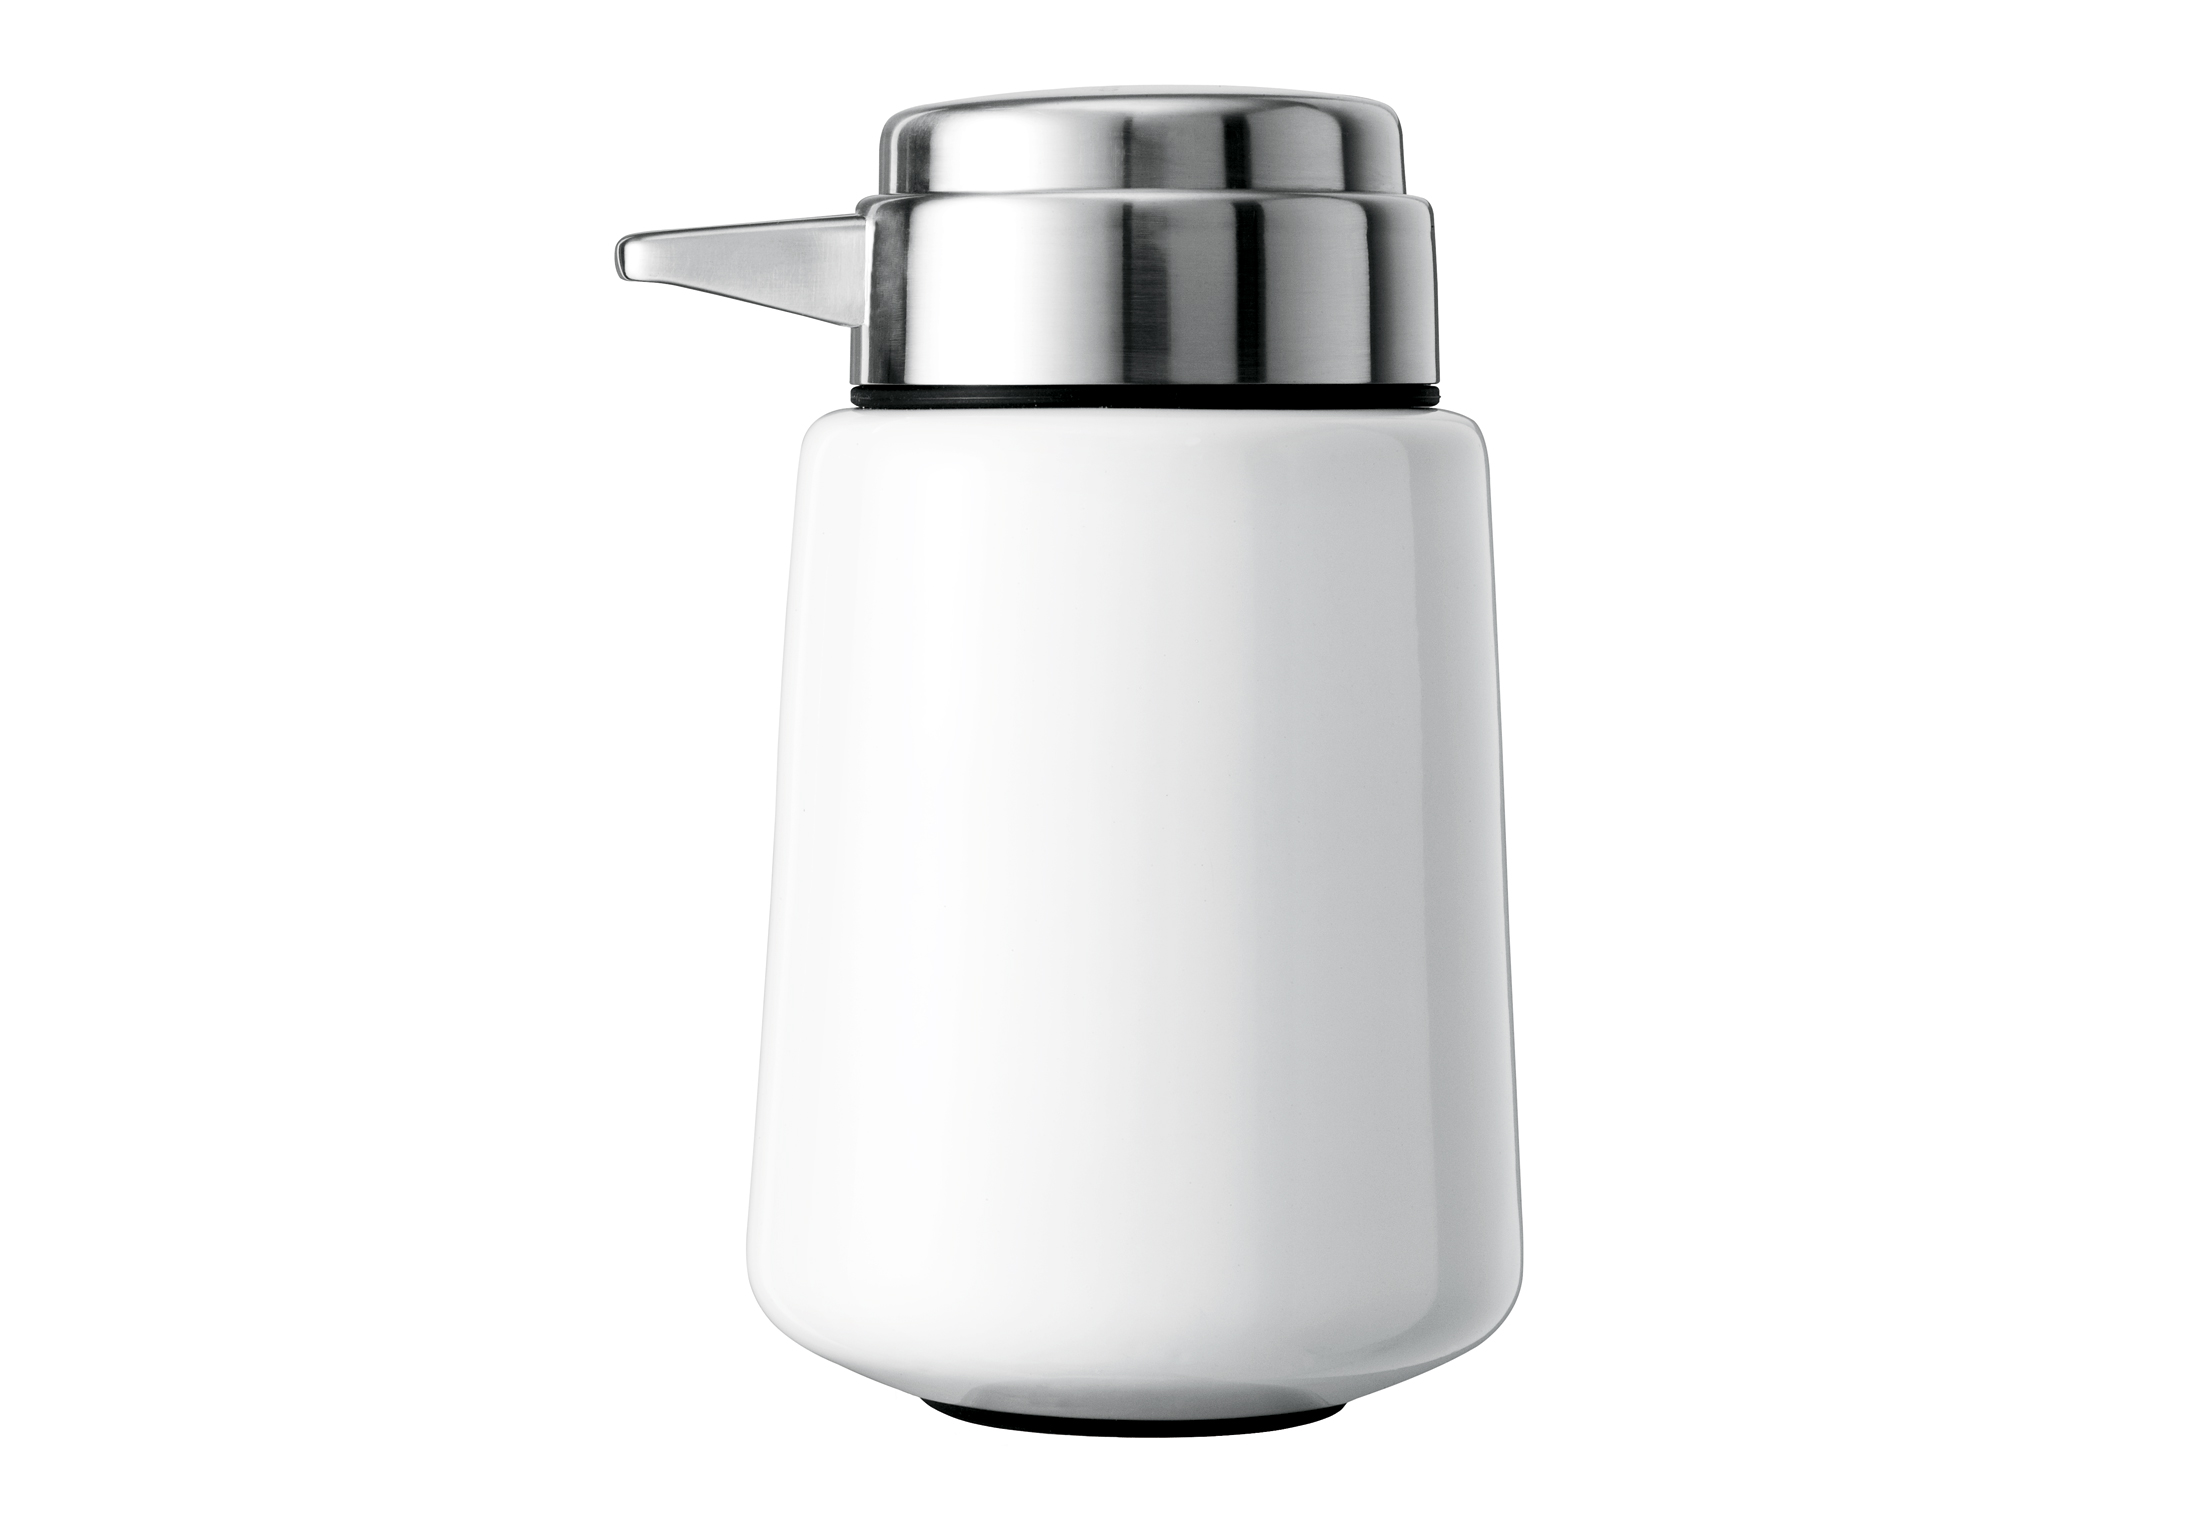 Stylish Soap Dispenser Seifenspender Von Vipp Stylepark